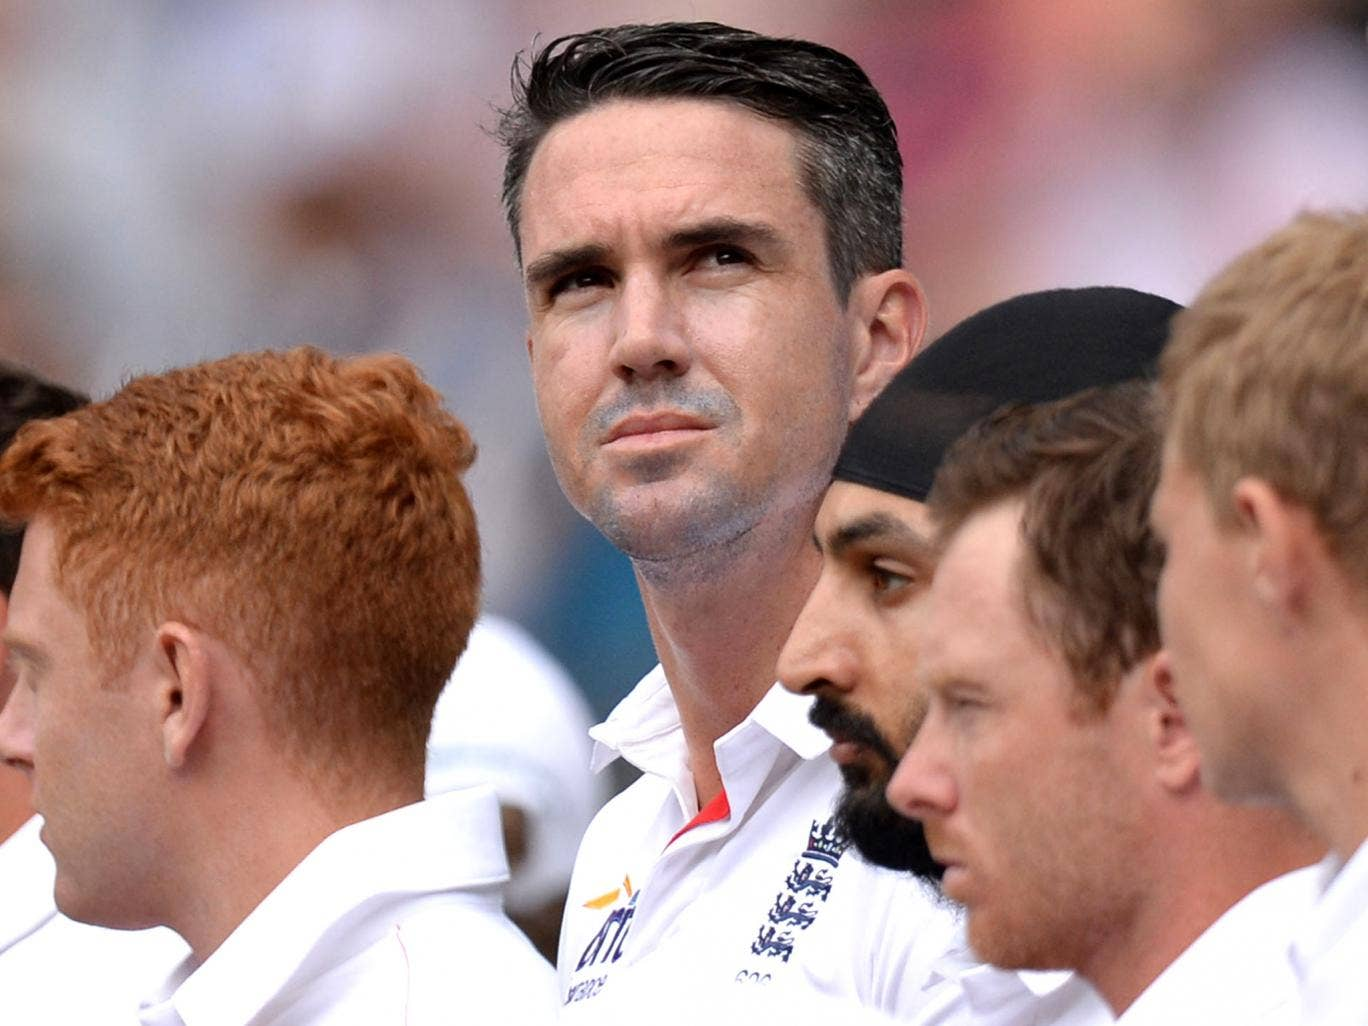 Kevin Pietersen is adamant he wishes to 'continue playing for my country'